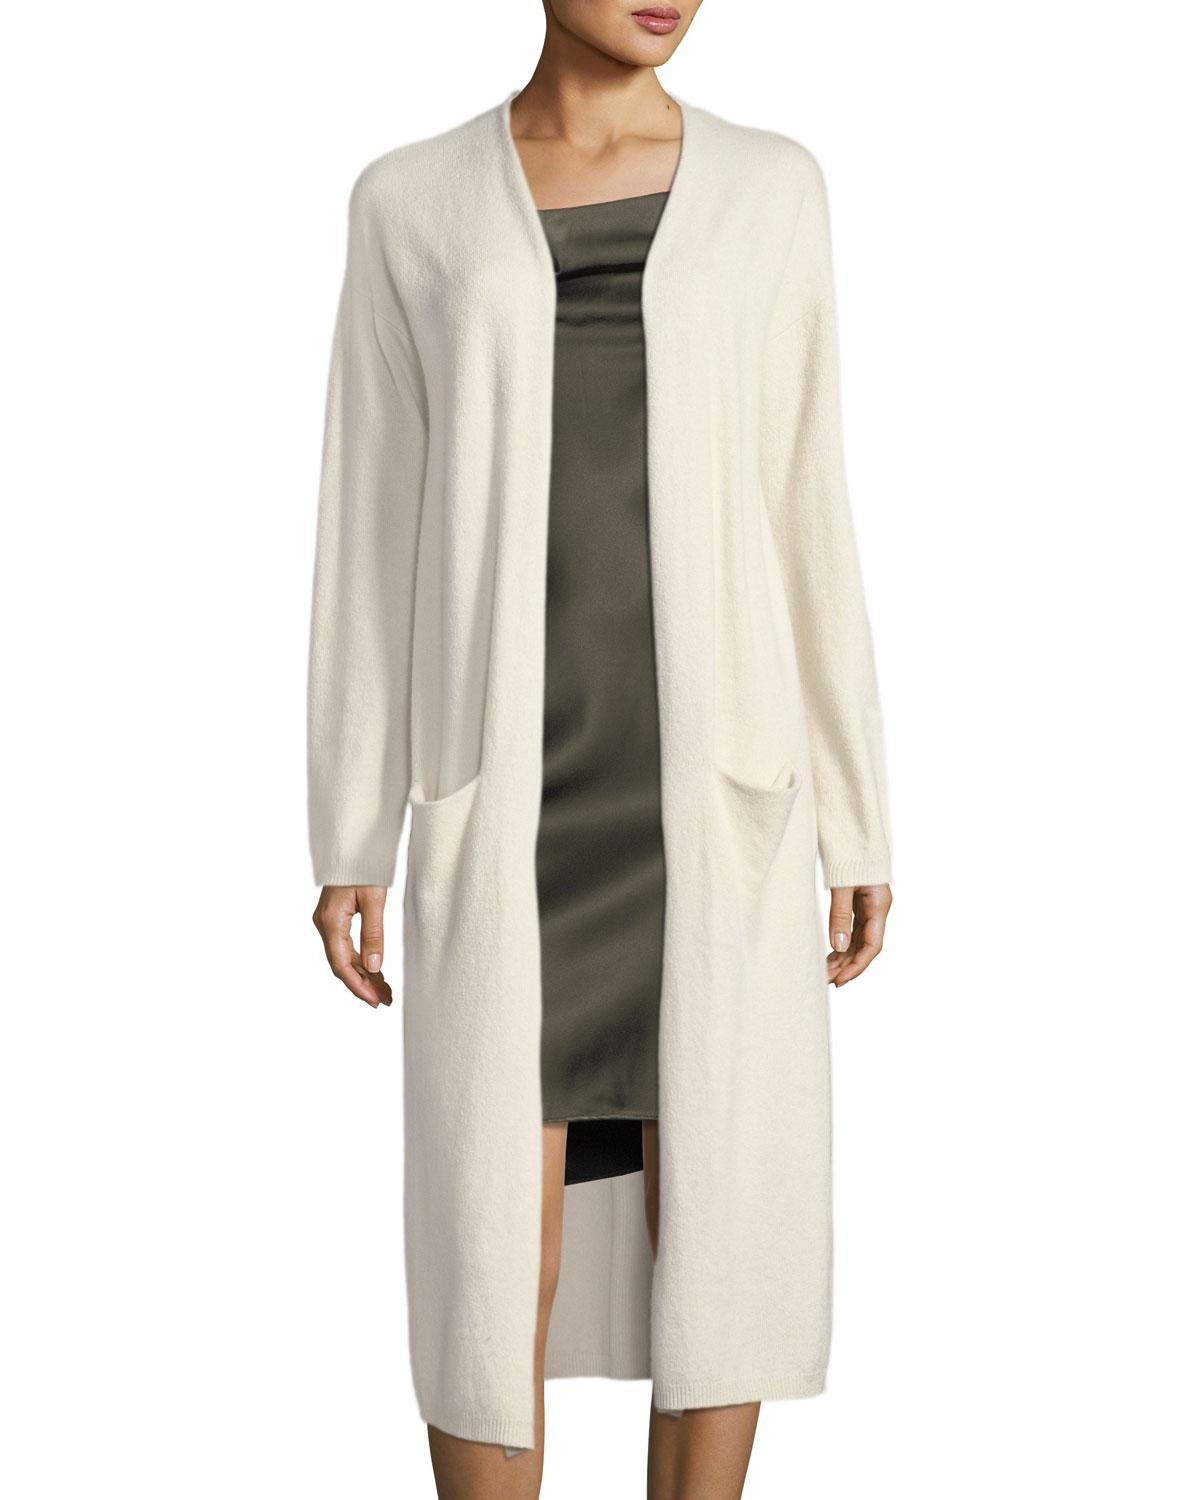 Halston heritage Long-sleeve Open-front Duster Cardigan in Gray | Lyst